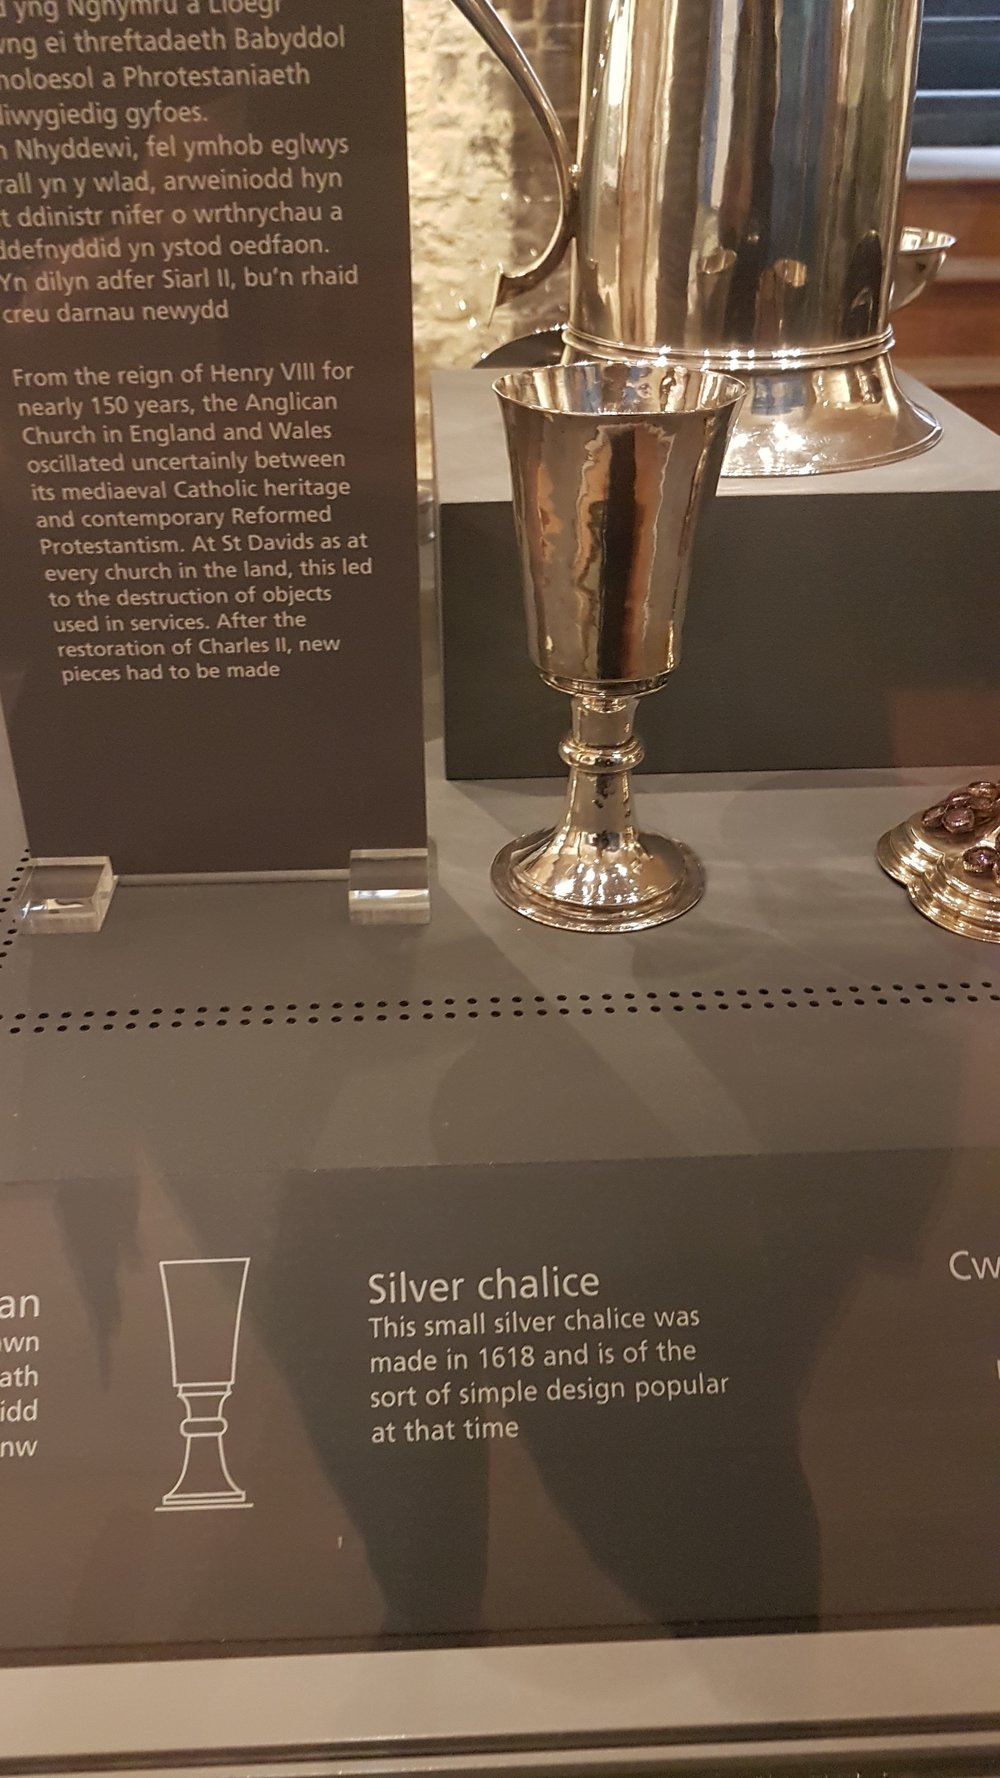 Silver chalice dating back to 1618